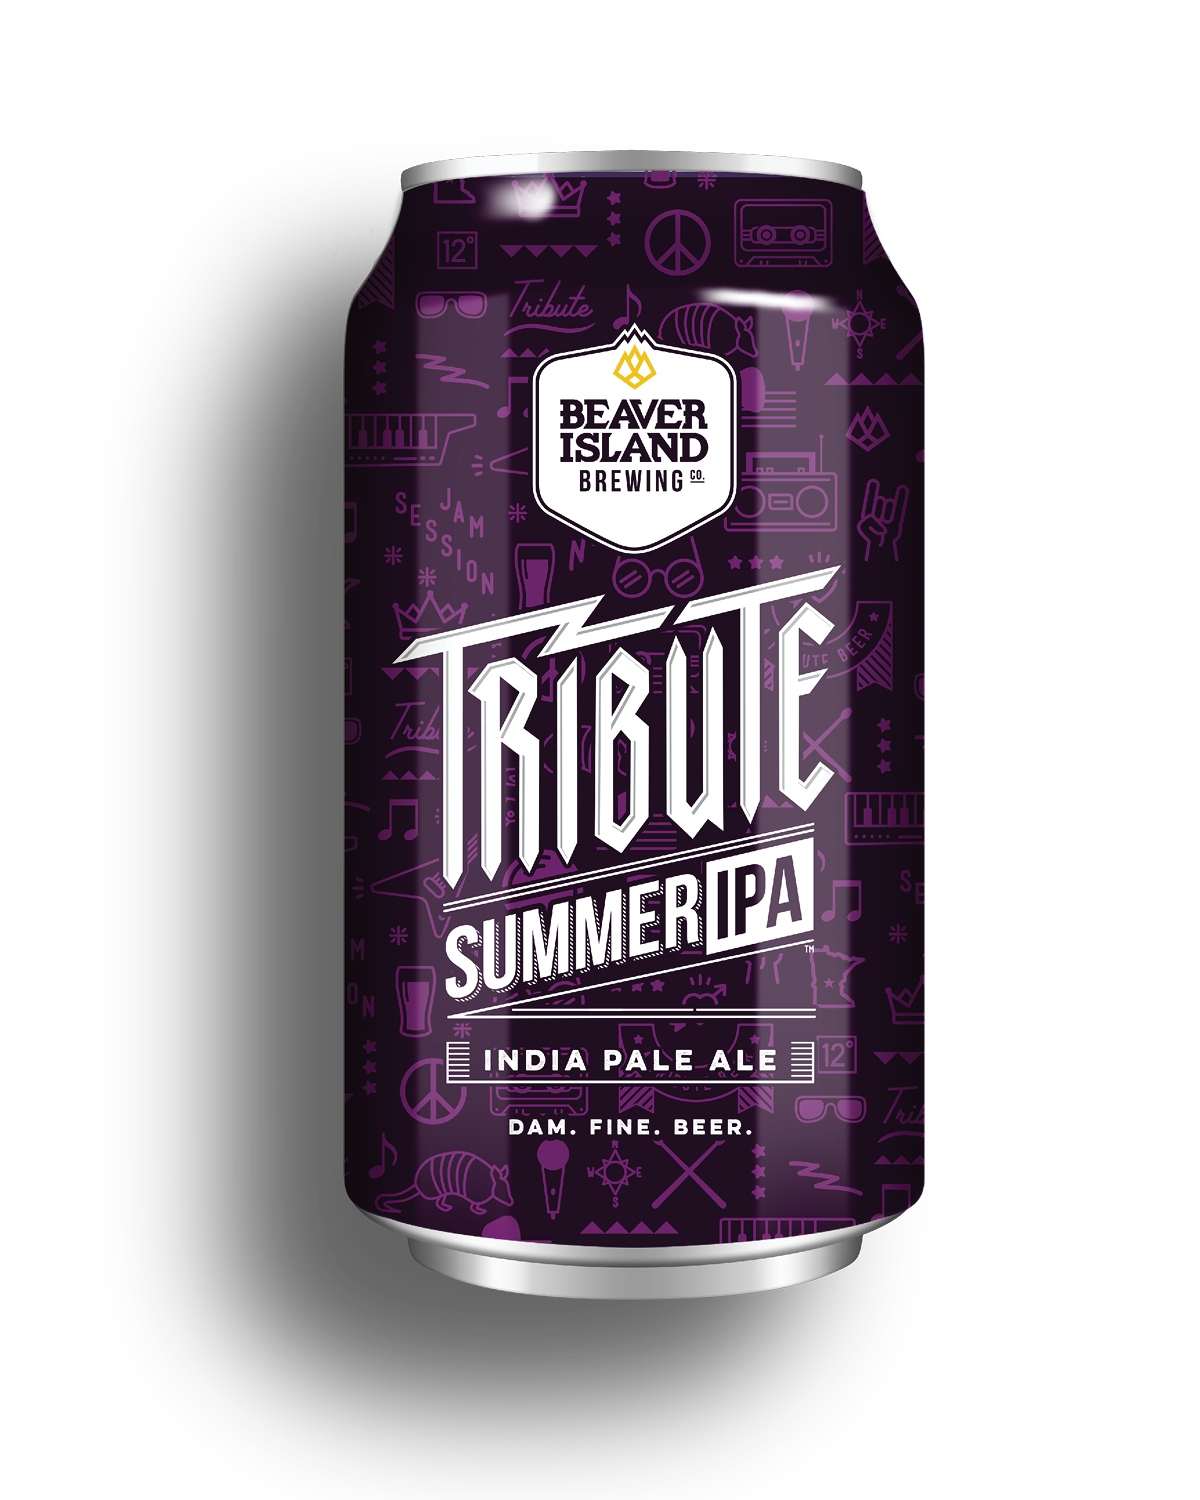 Beaver Island Brewing Tribute Summer IPA